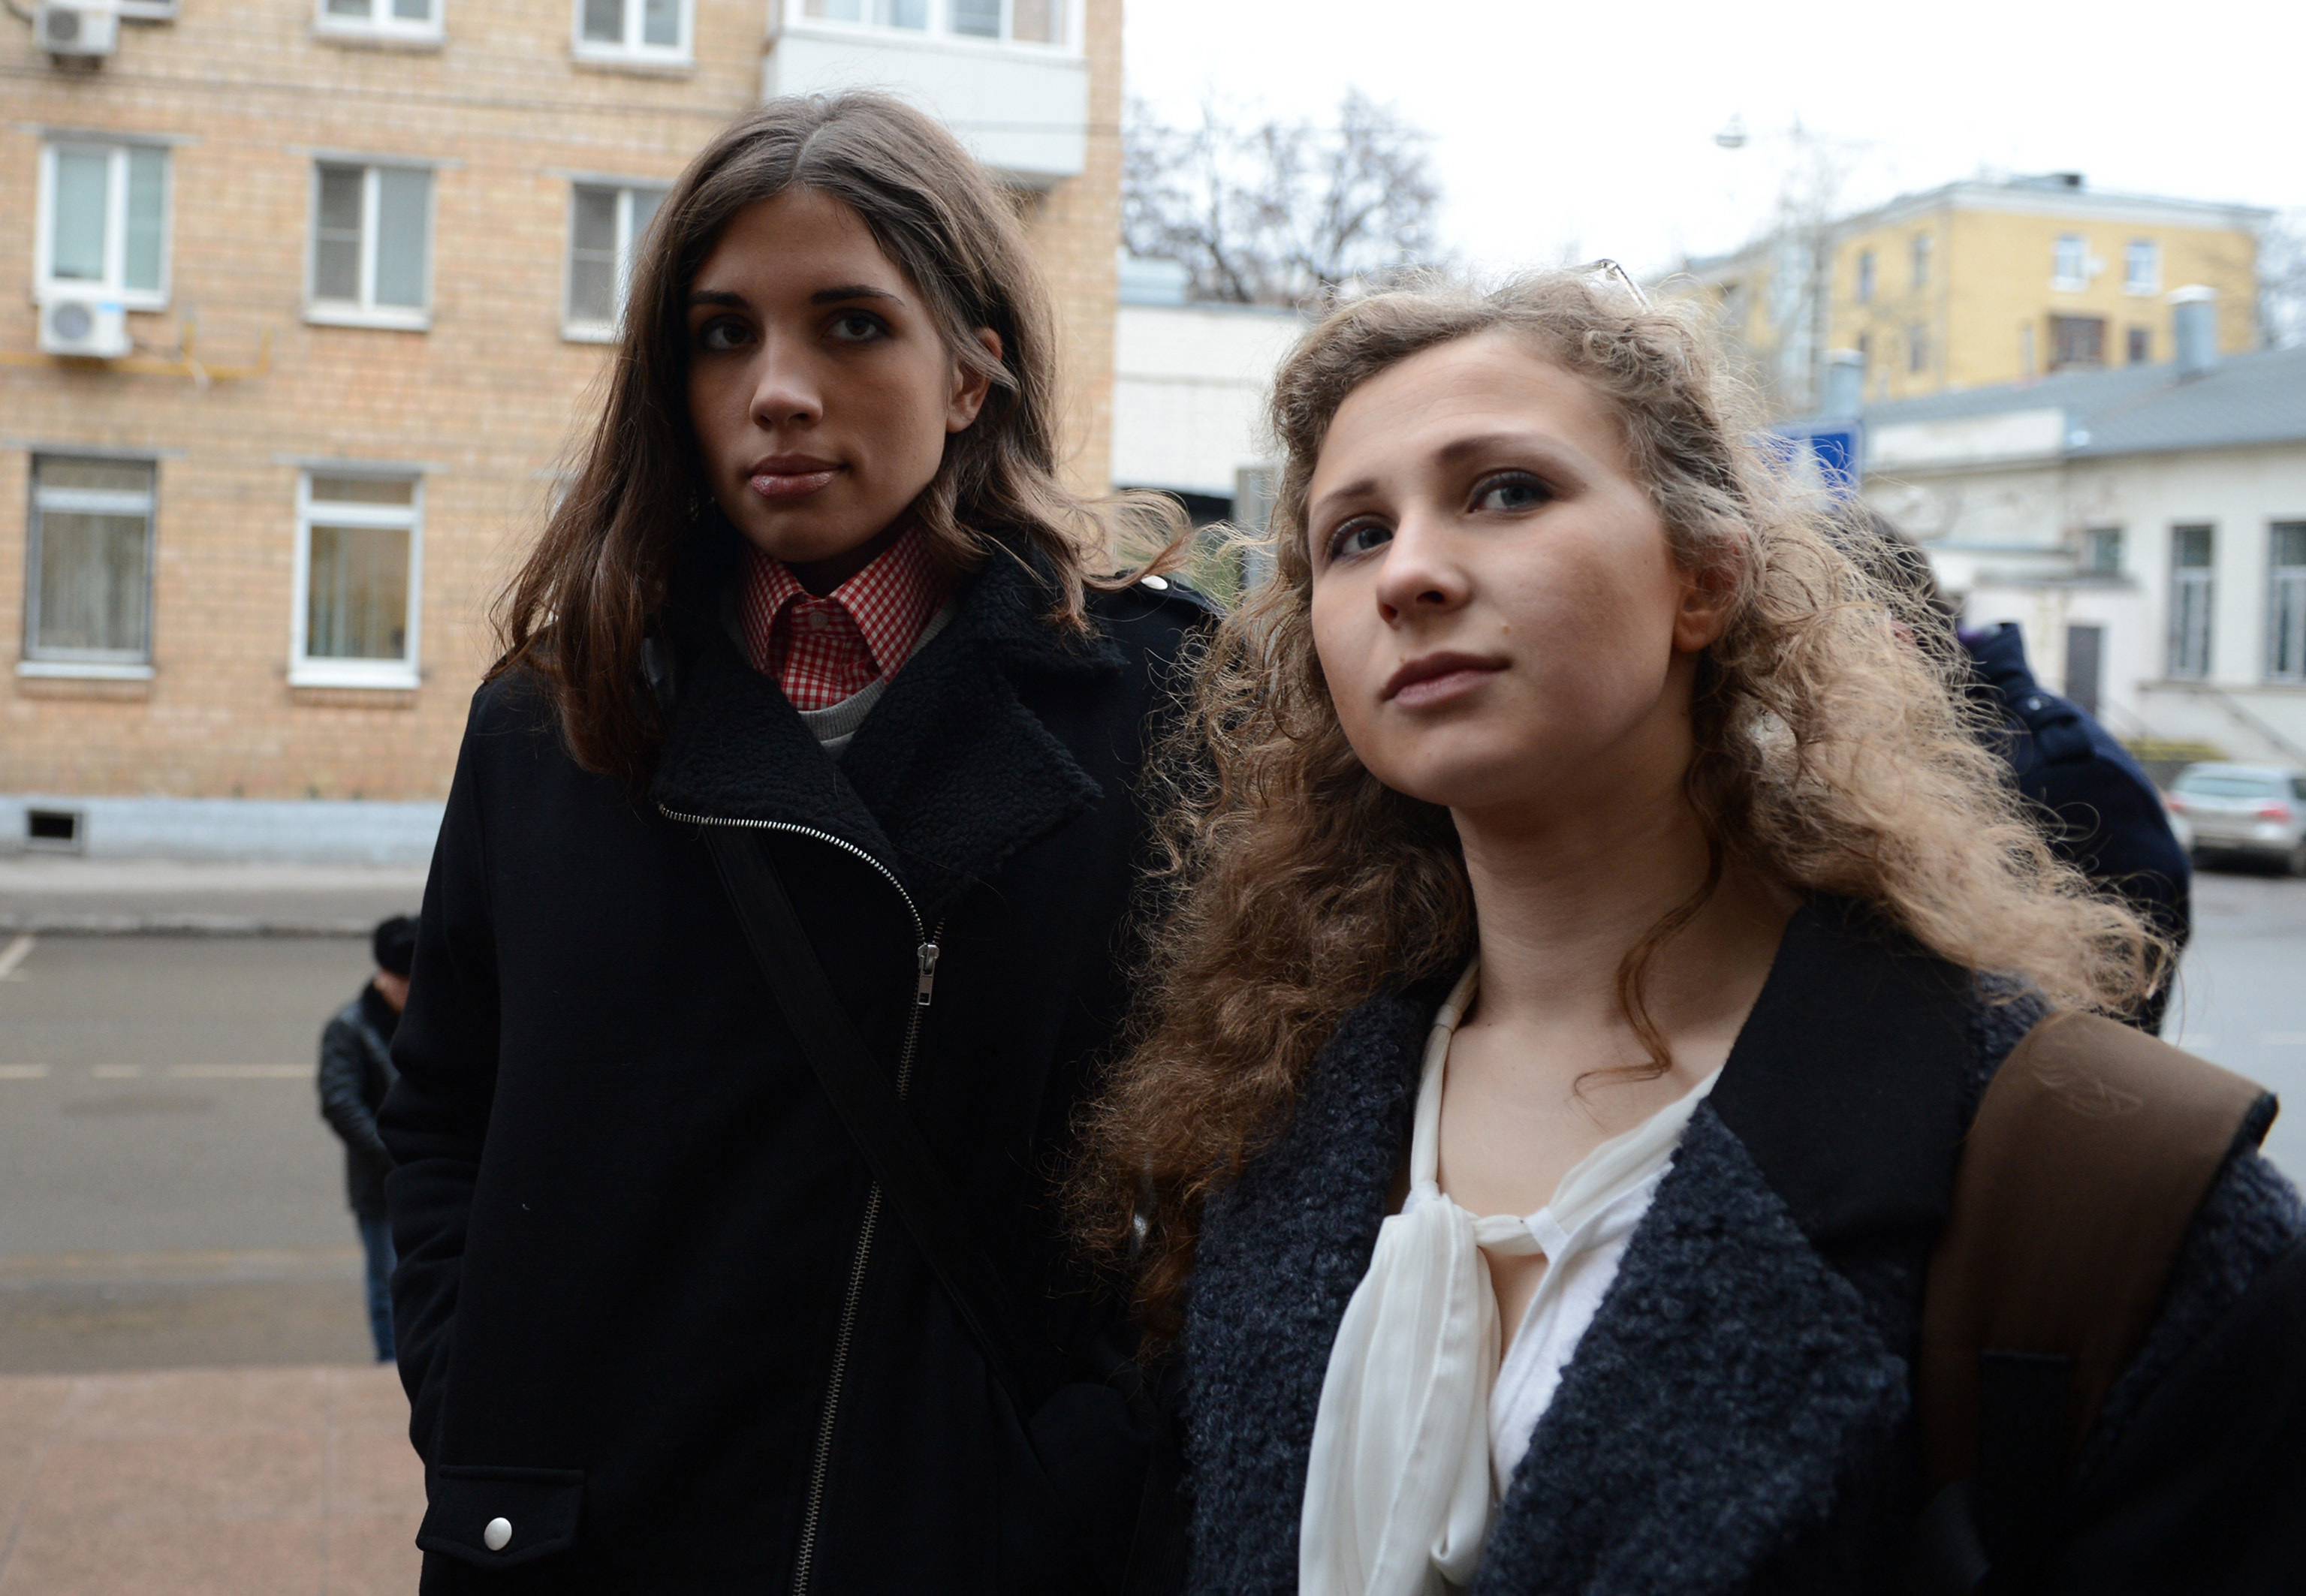 Maria Alyokhina (R) and  Nadezhda Tolokonnikova (L), members of Pussy Riot music club come to the court on January 9 to attend the  Bolotnaya trial  took action after an indignation meeting against Vlaidmir Putin at Bolotnaya Spuare in 2012, Moscow, Russia